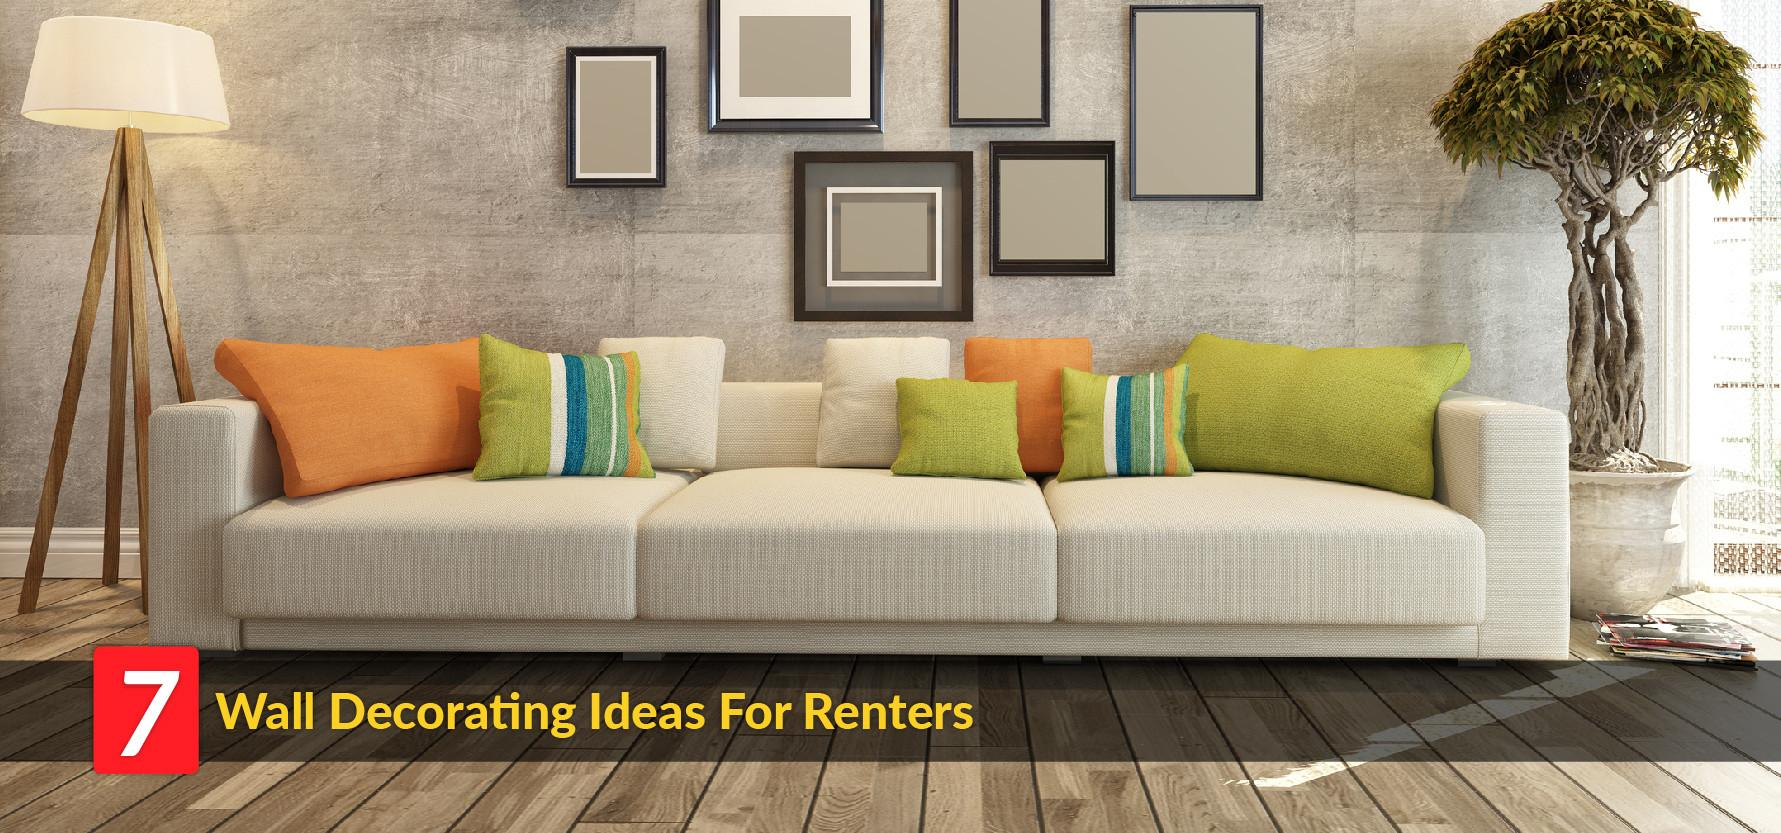 Home Cor Ideas Here Renters Can Decorate Walls